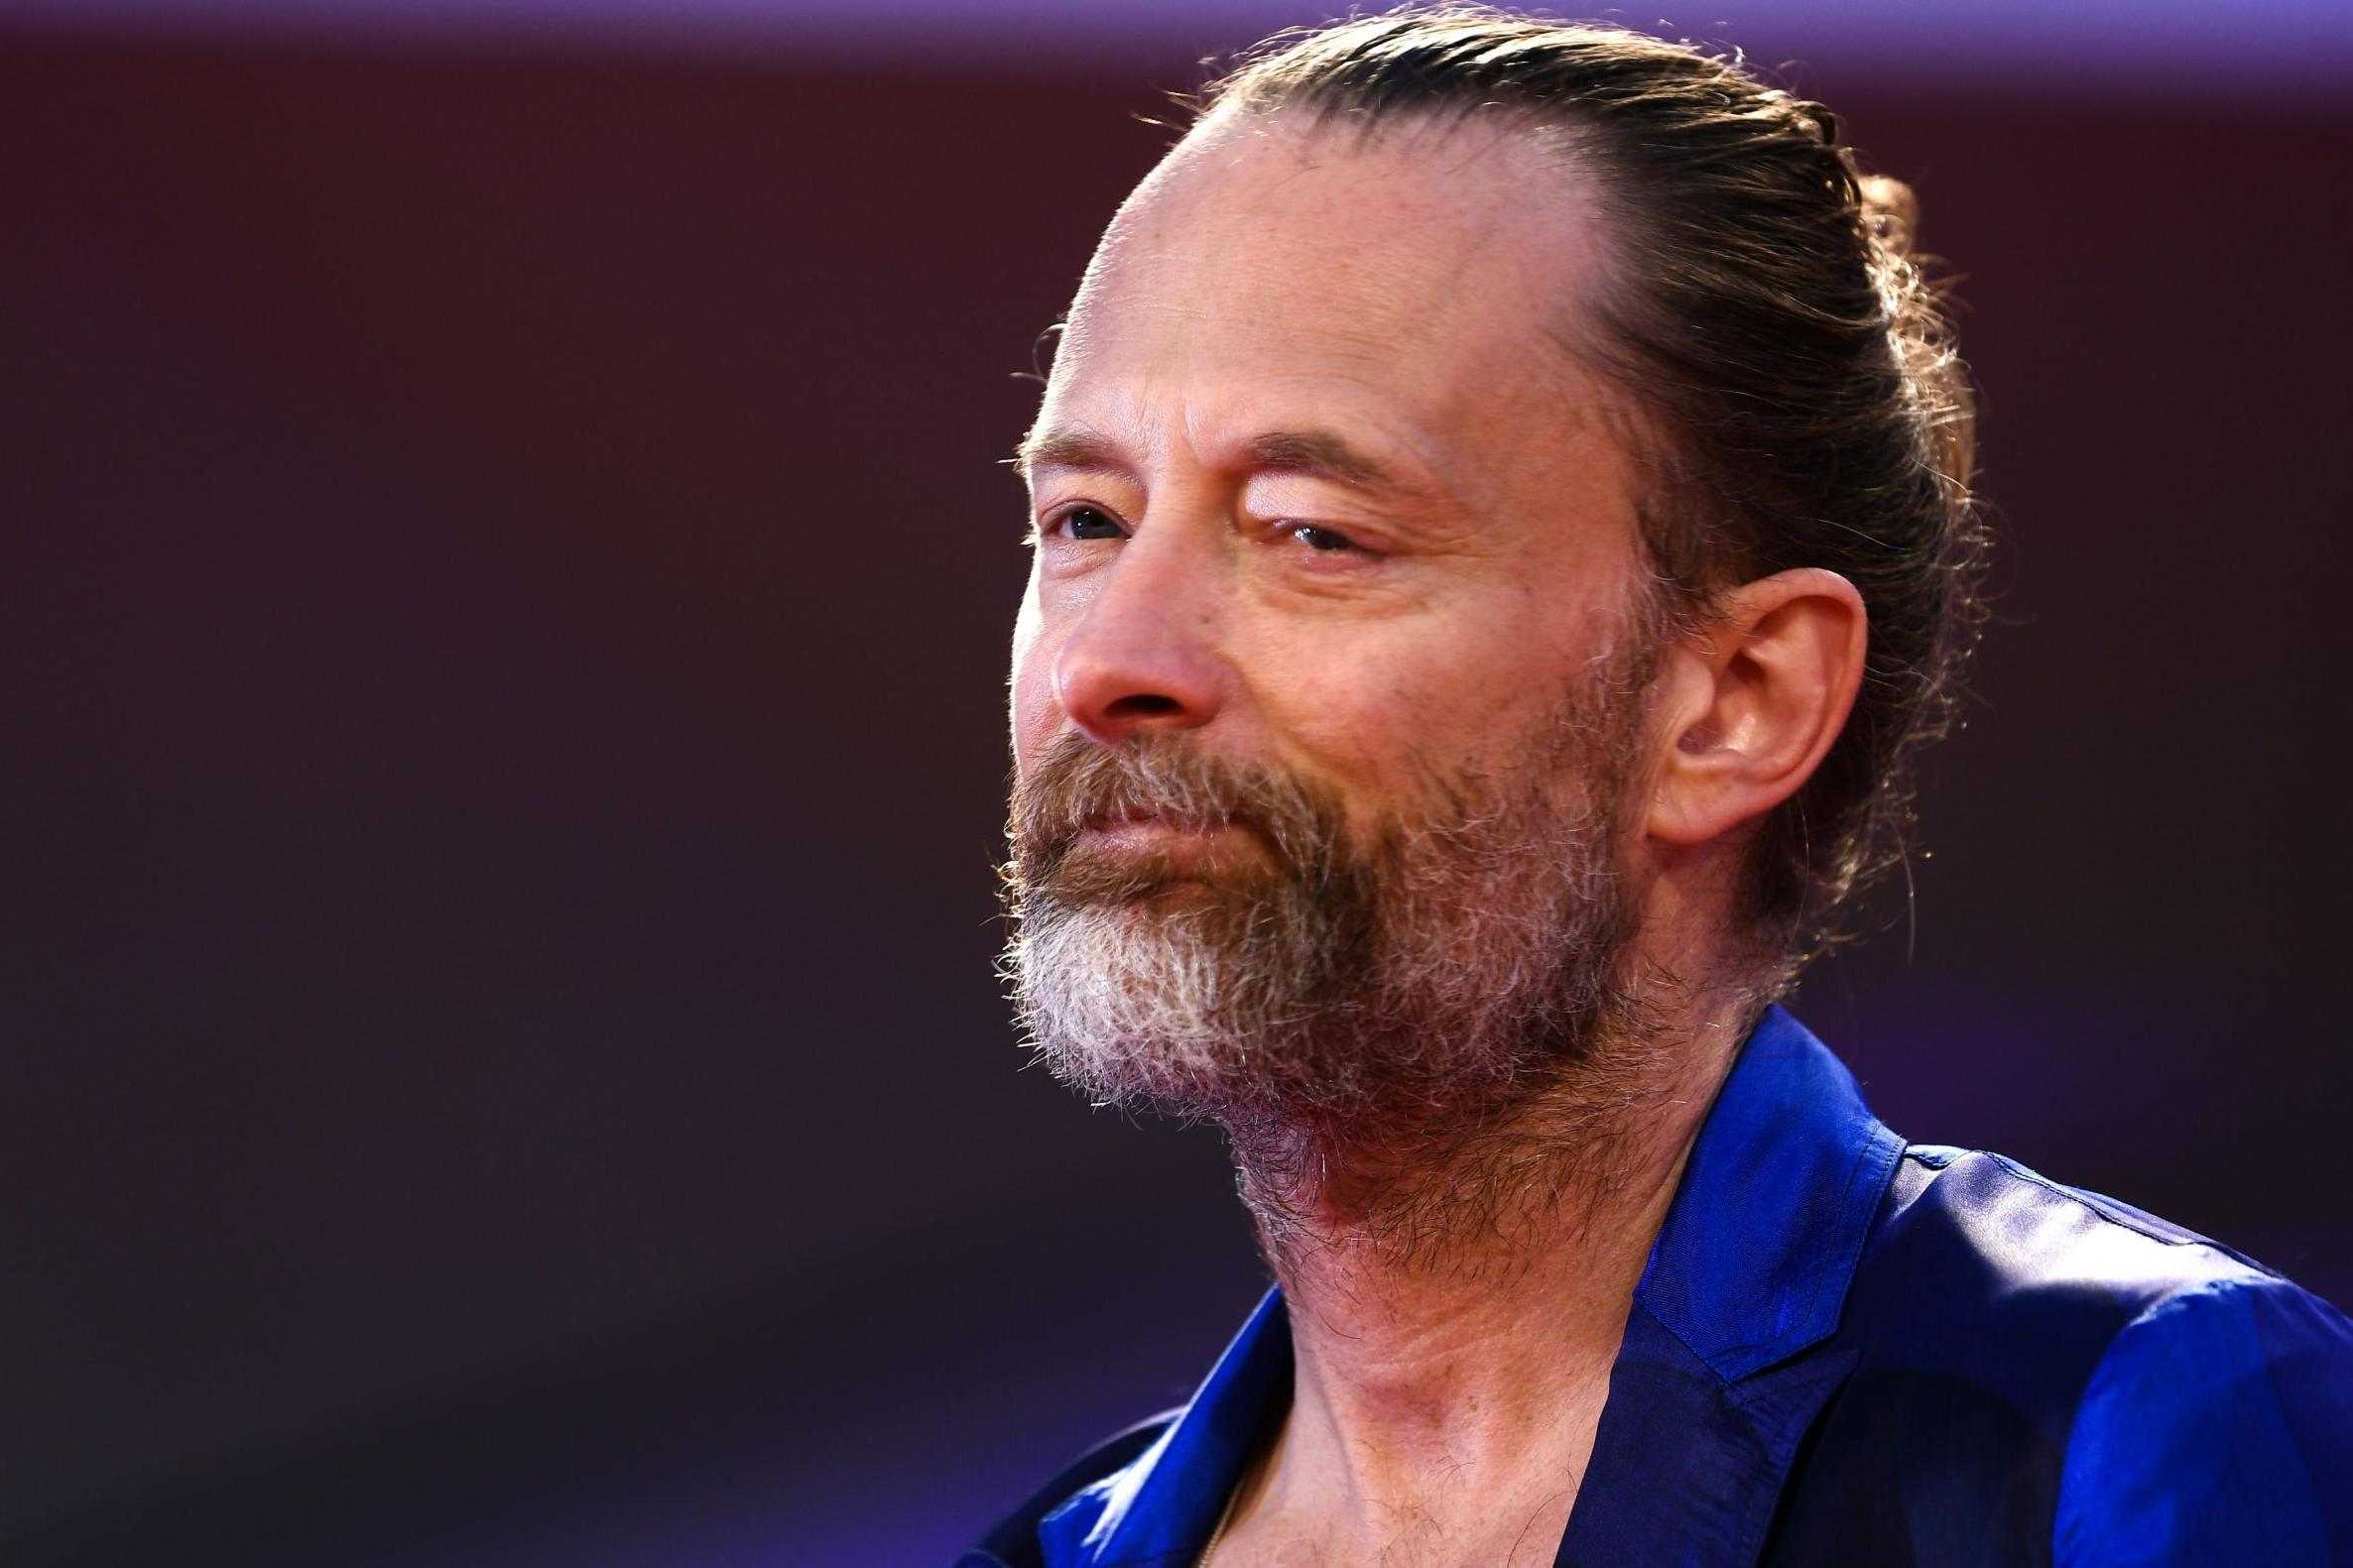 Strictly Come Dancing: Radiohead frontman Thom Yorke says he was once asked to be on competition